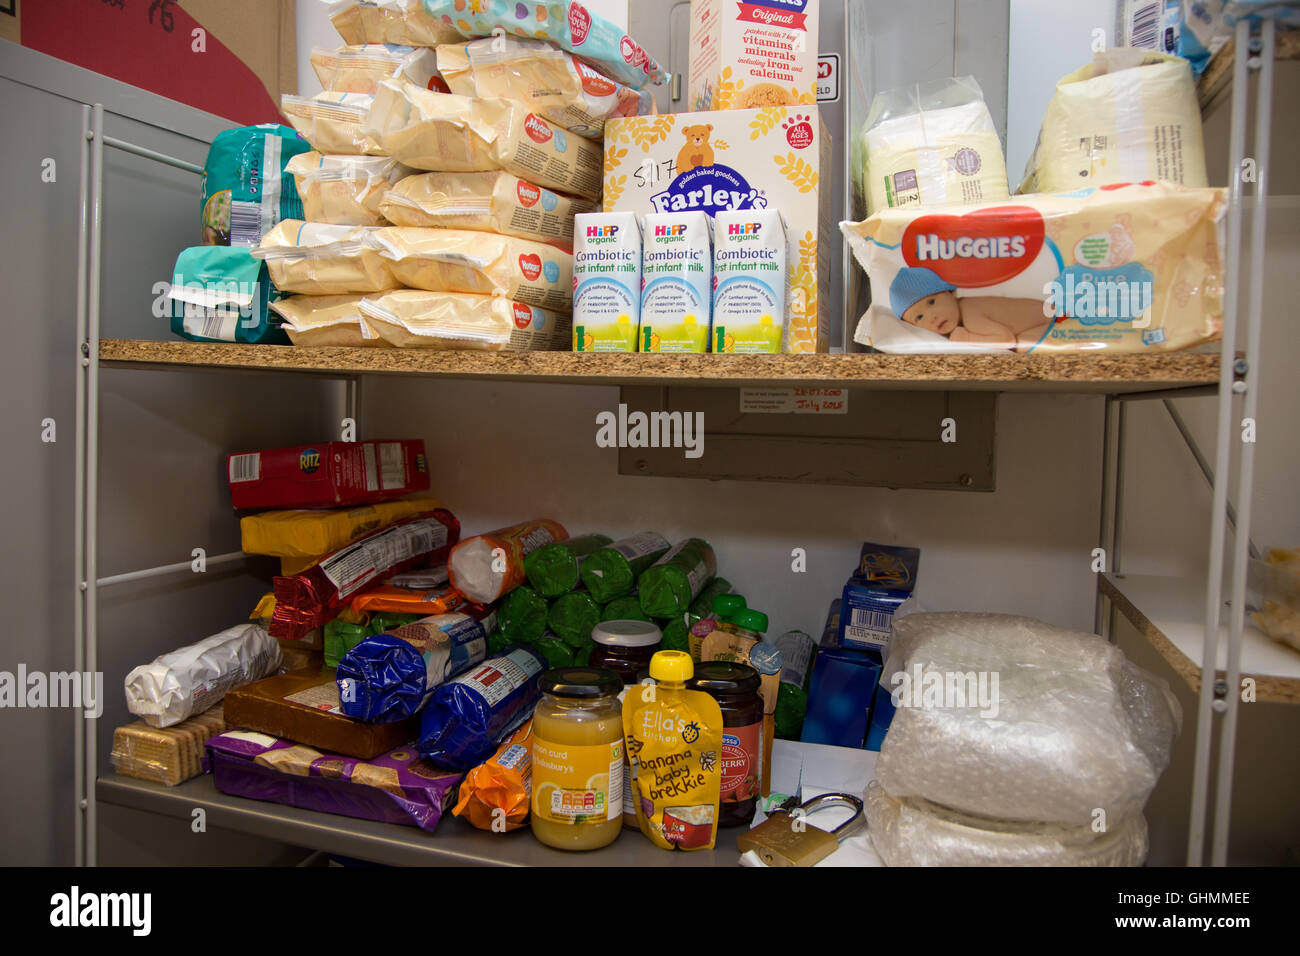 Shelves at North Paddington foodbank, which includes baby products, biscuits, crackers. - Stock Image